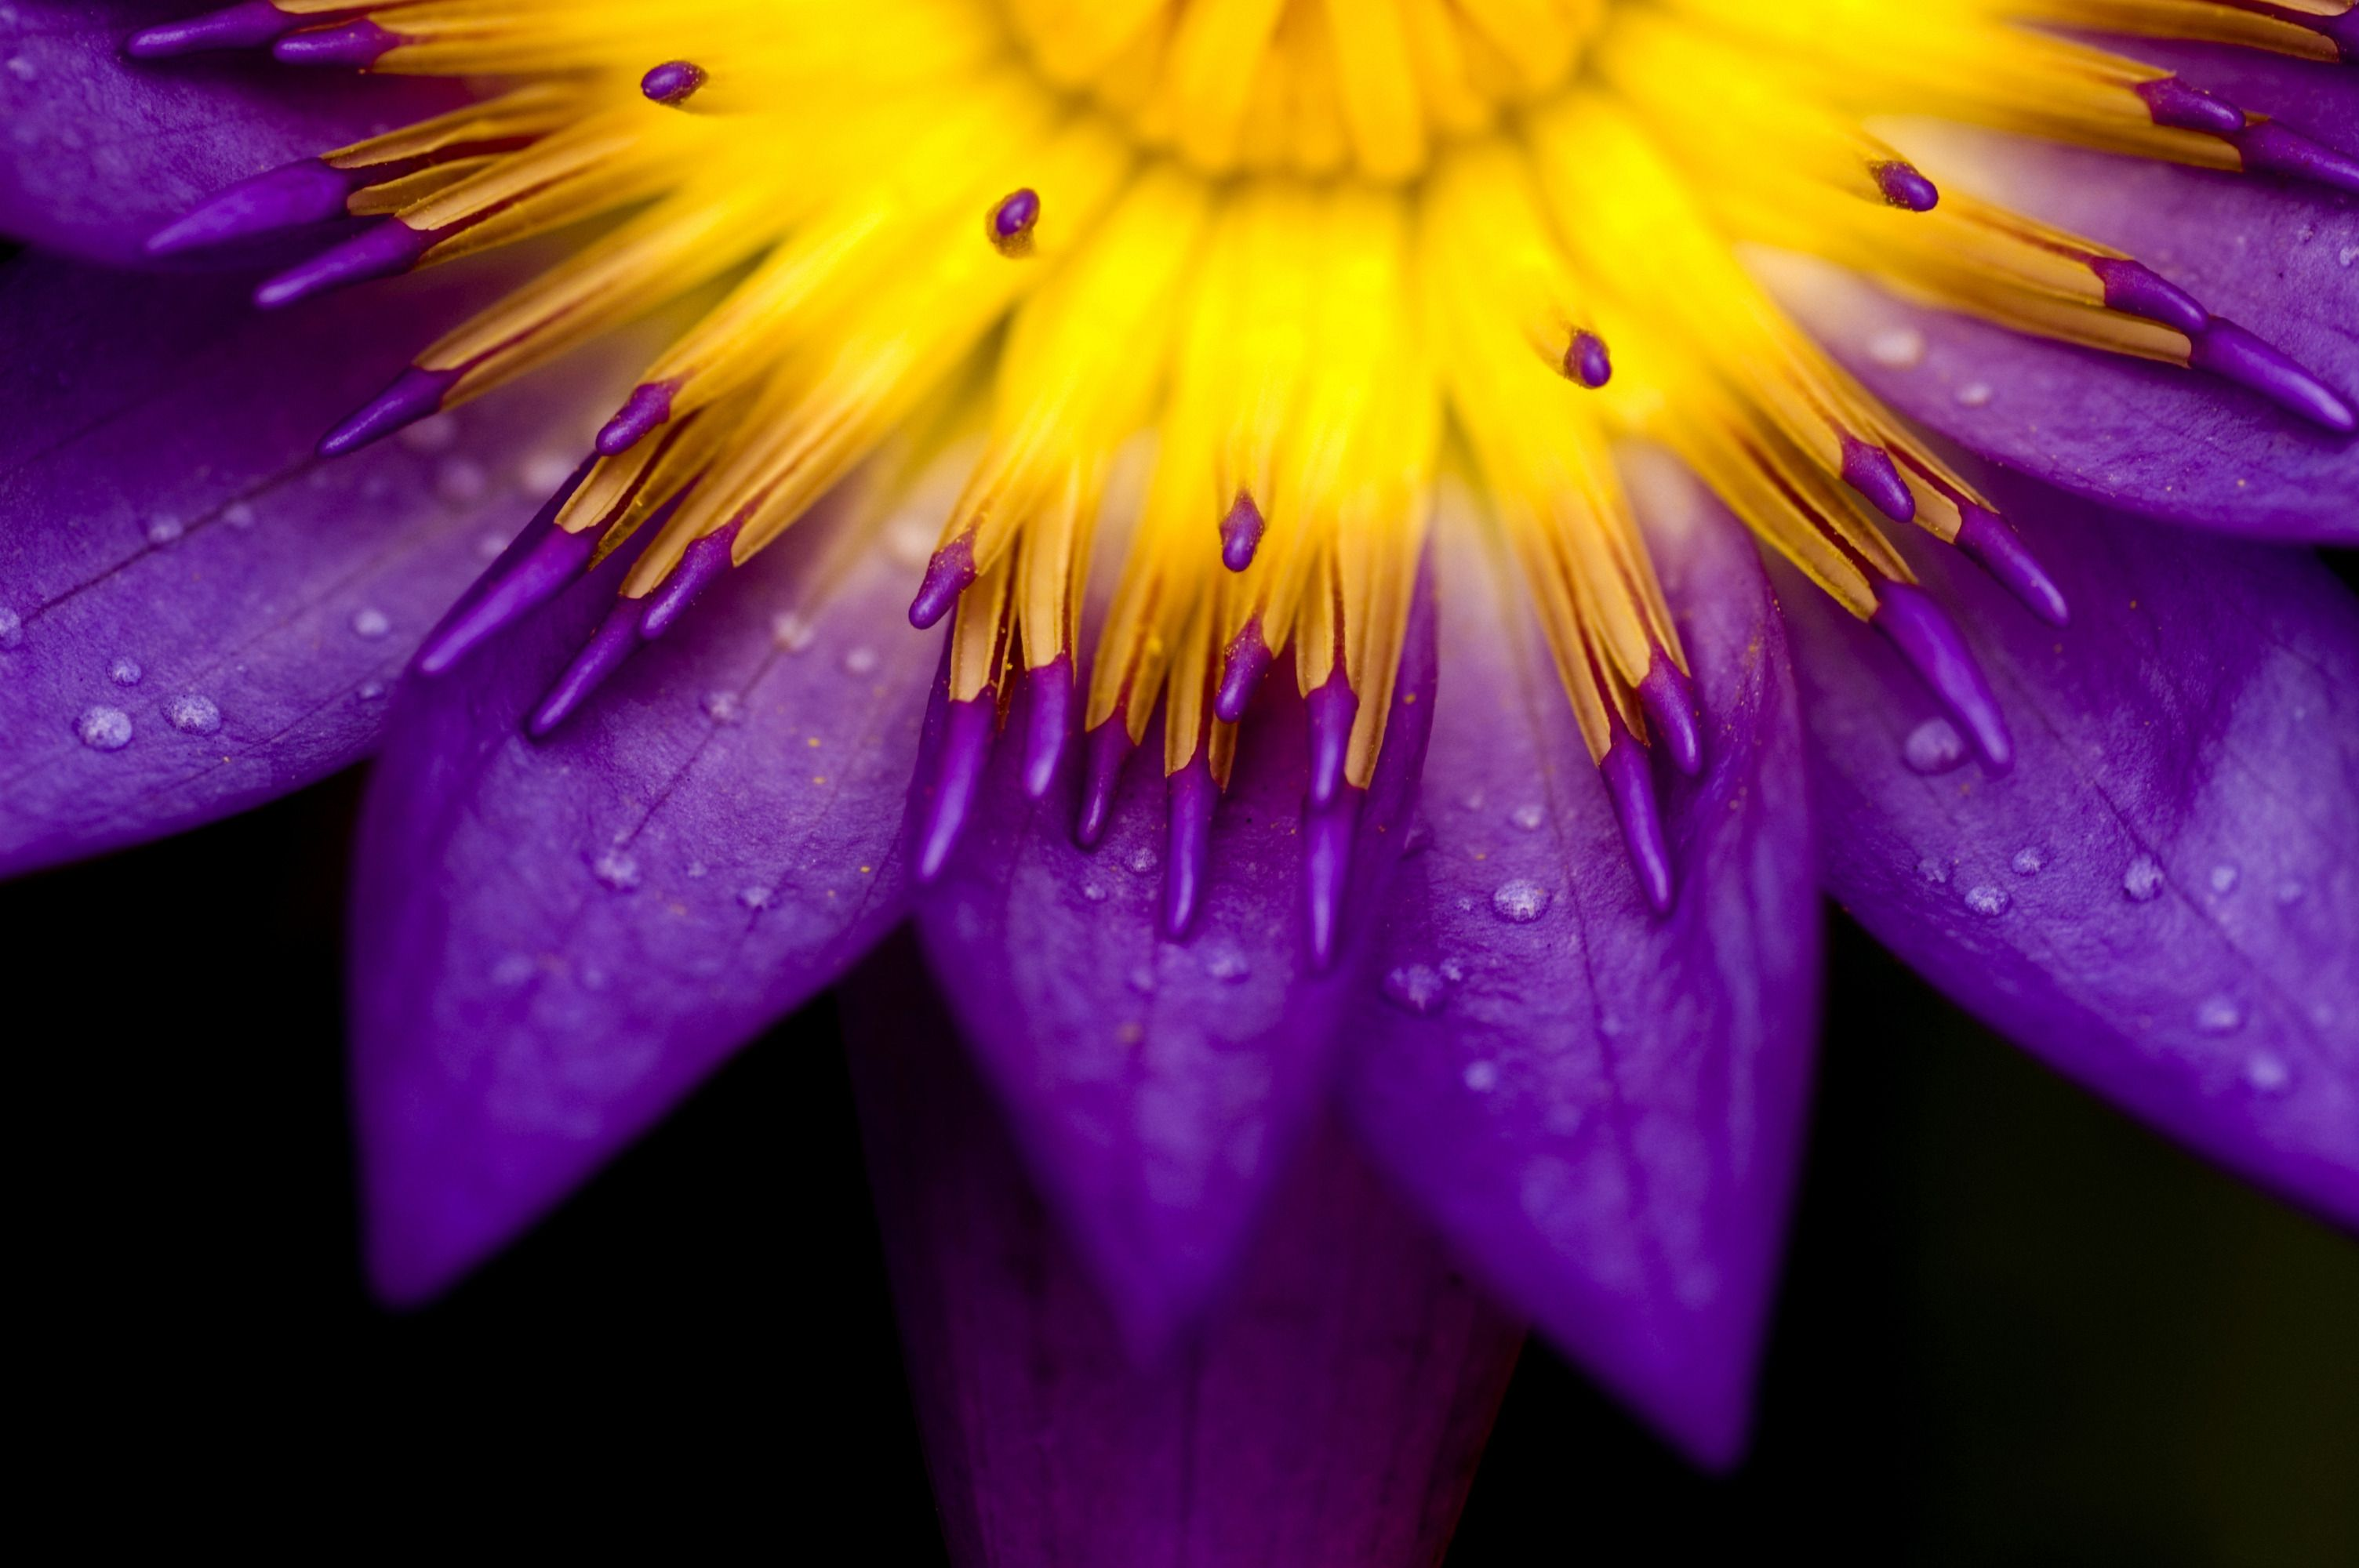 Purpleandyellowflowers Purple Yellow Flower Wallpaper For